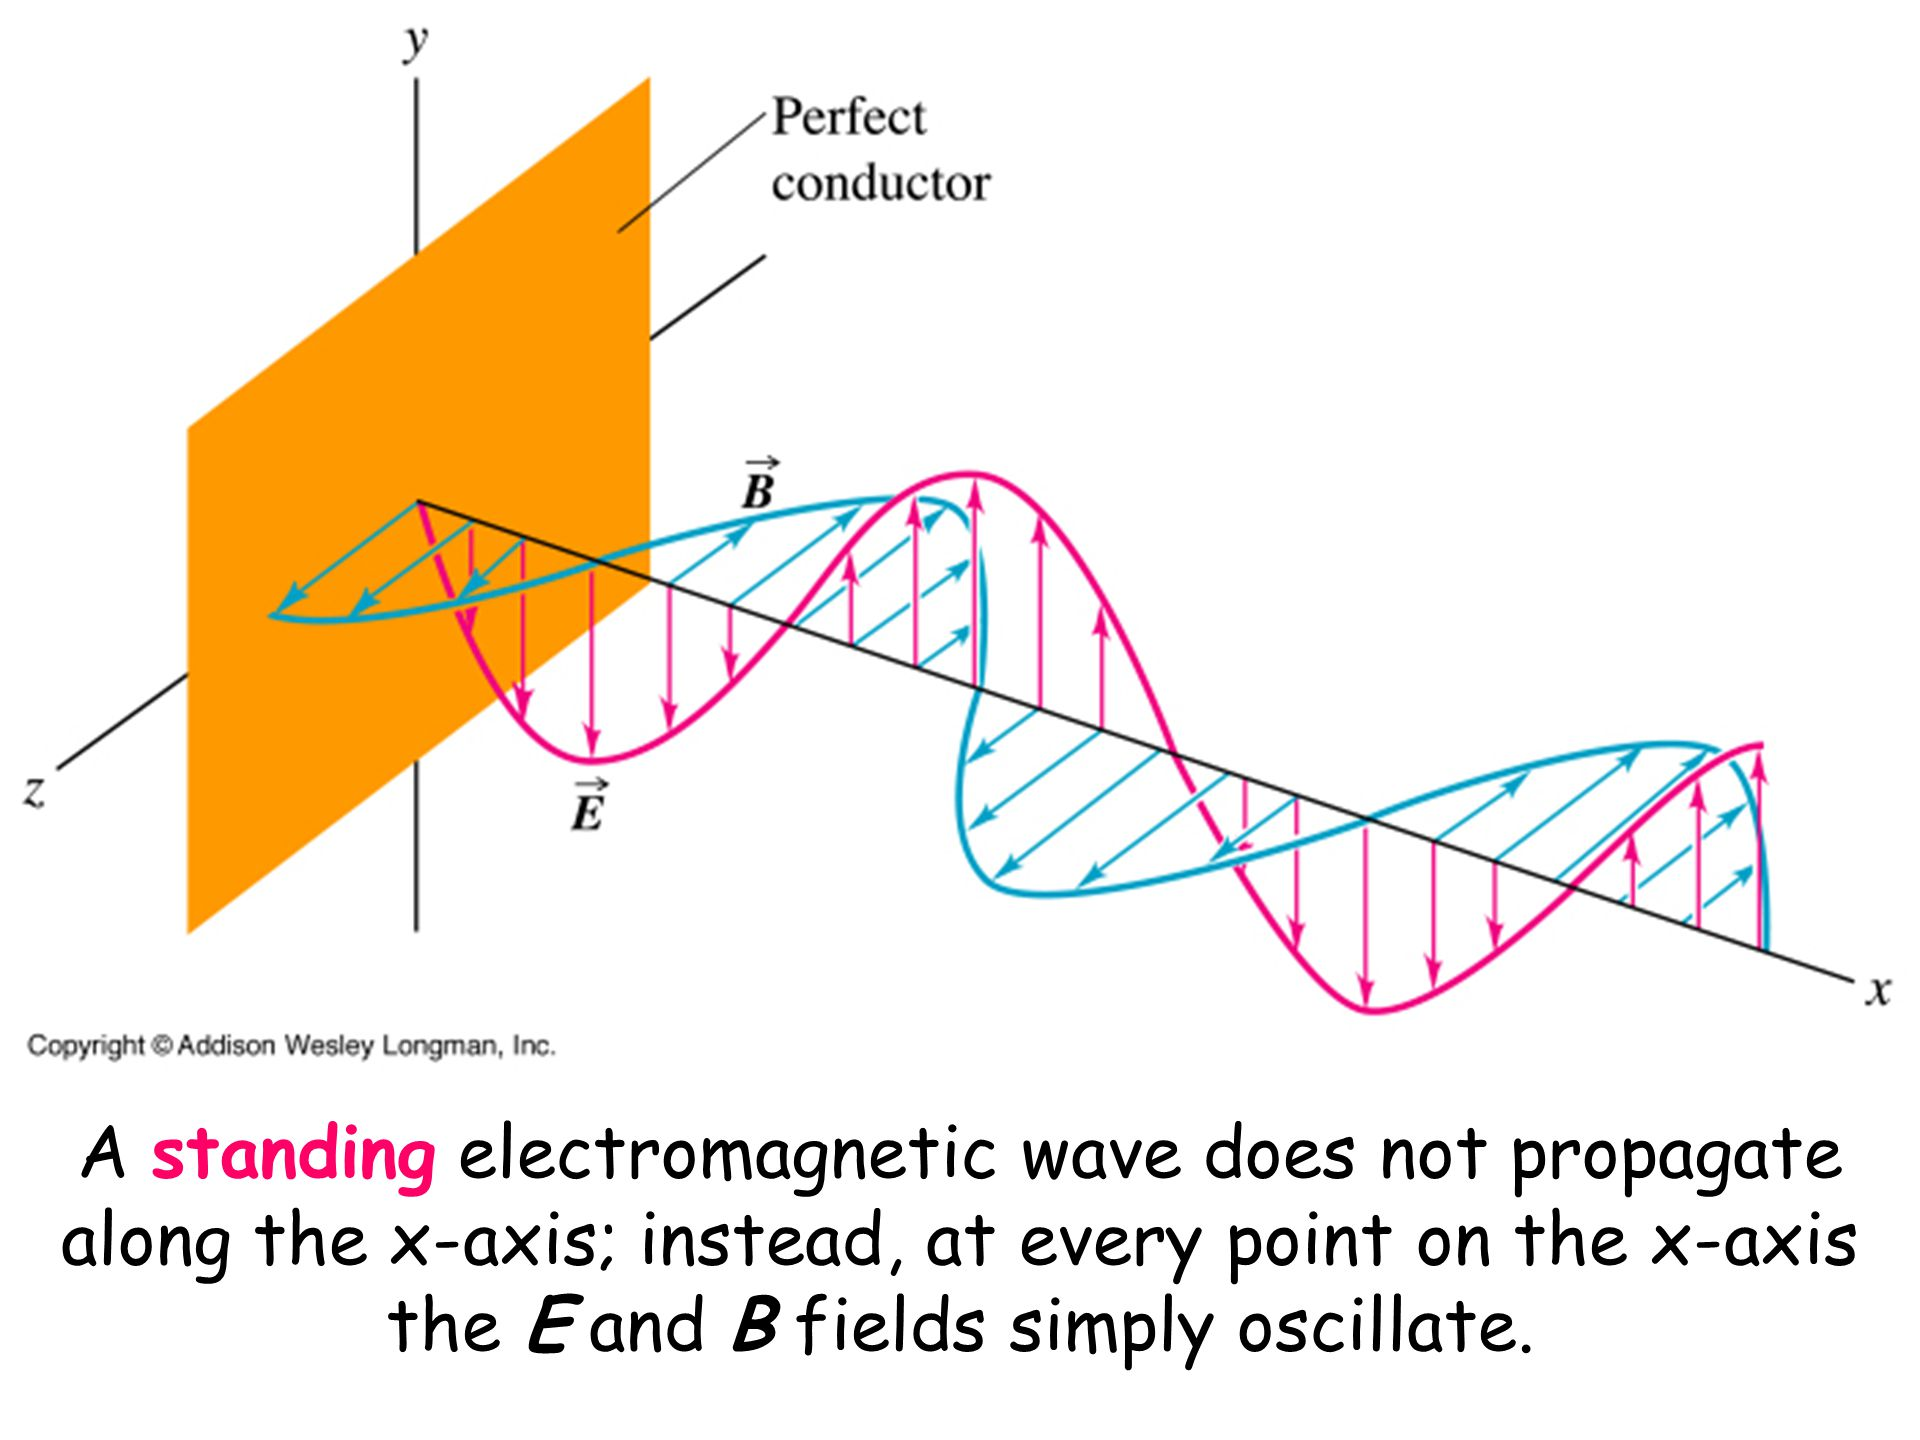 A standing electromagnetic wave does not propagate along the x-axis; instead, at every point on the x-axis the E and B fields simply oscillate.